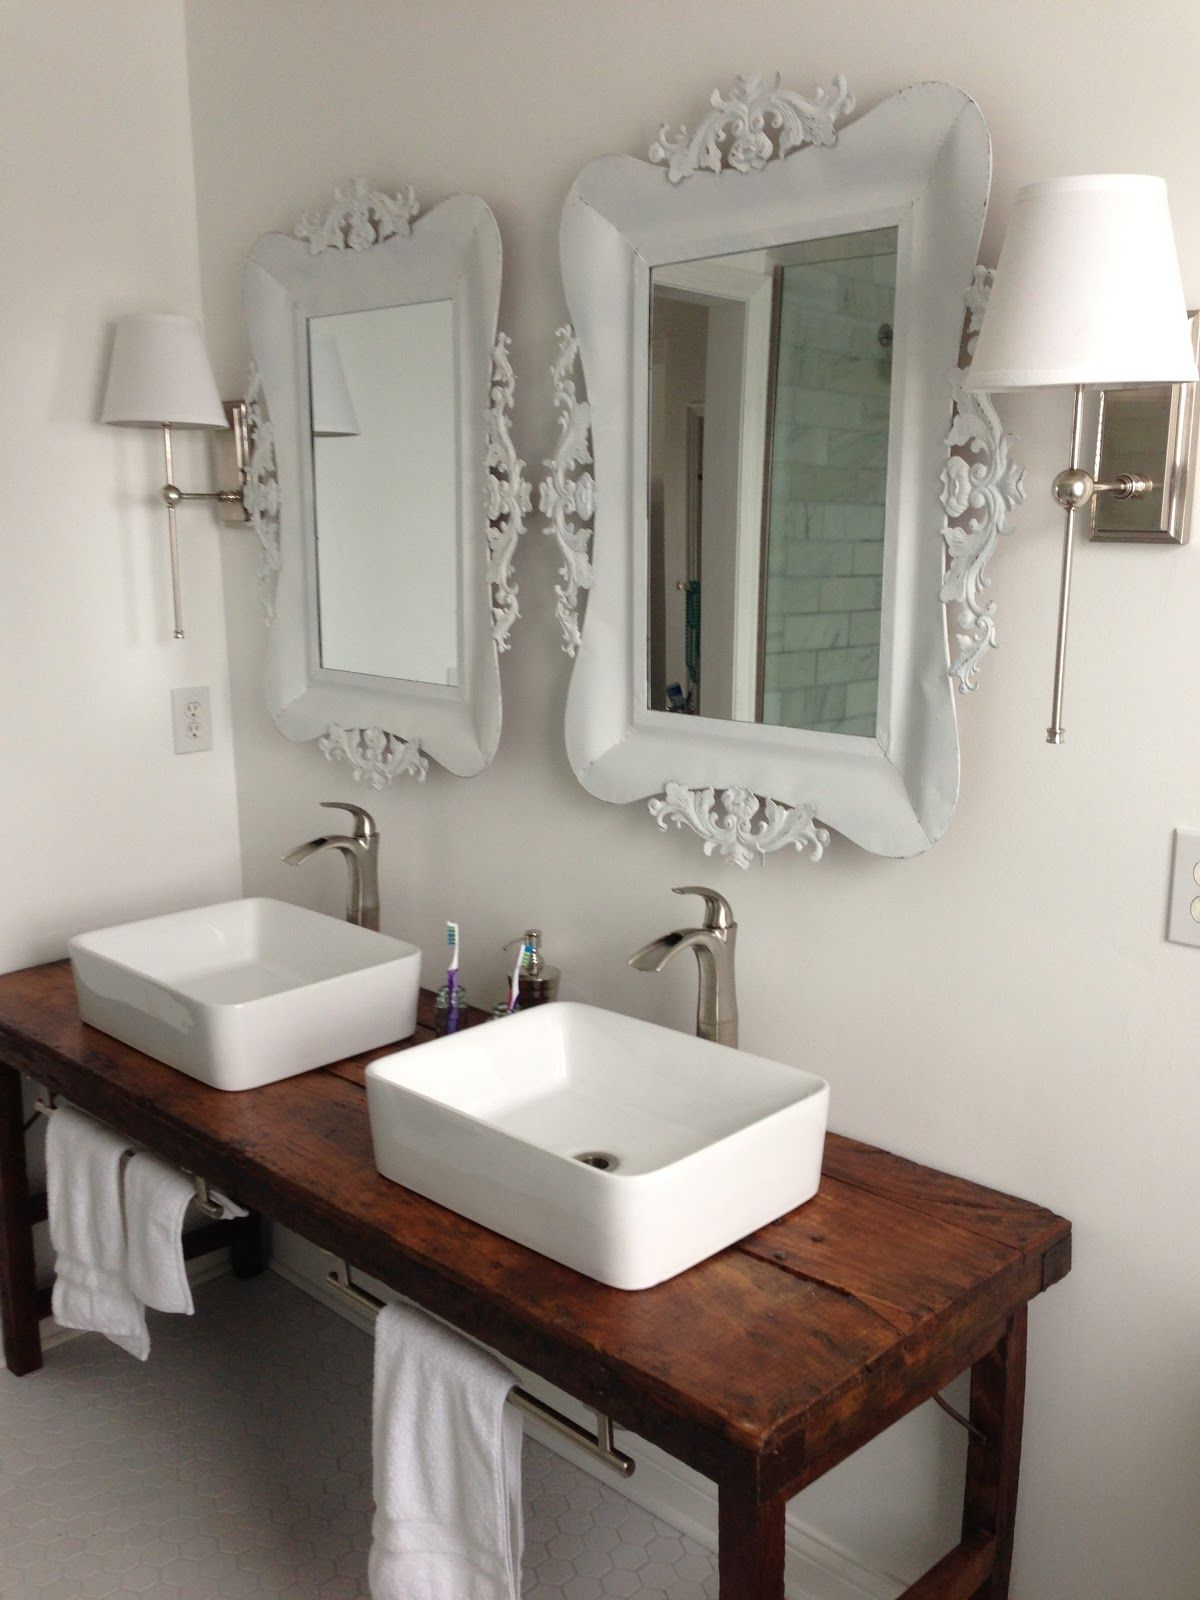 Incroyable White Bathroom With Vessel Sinks And Wood Table As Vanity Like The Table  Vanity